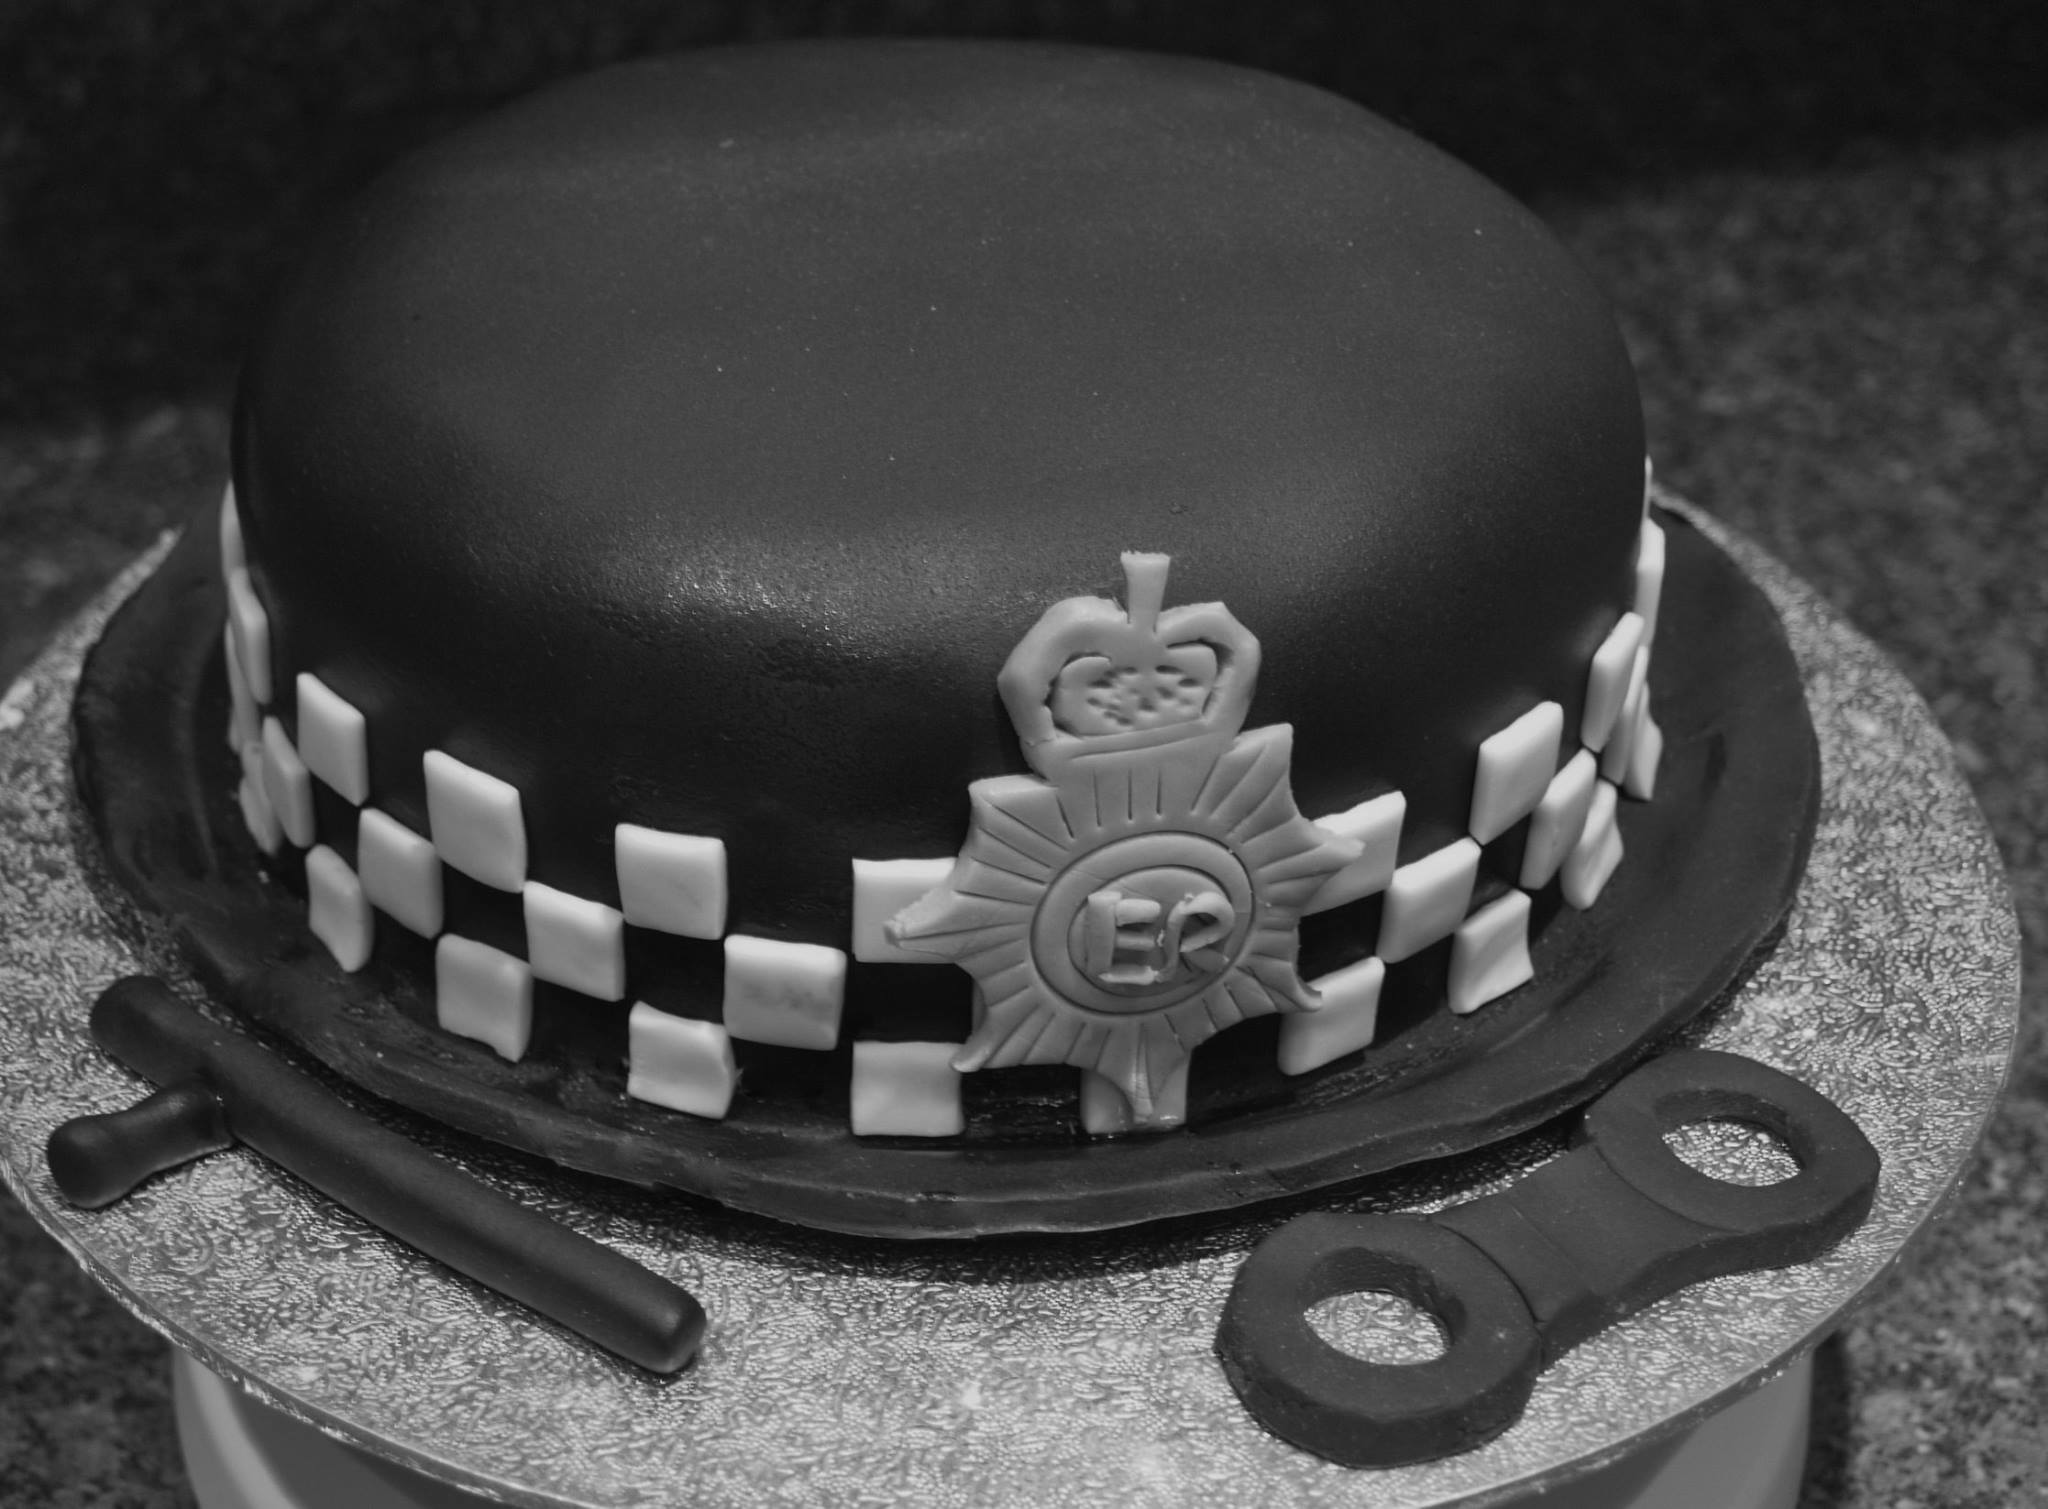 Policewoman's hat cake